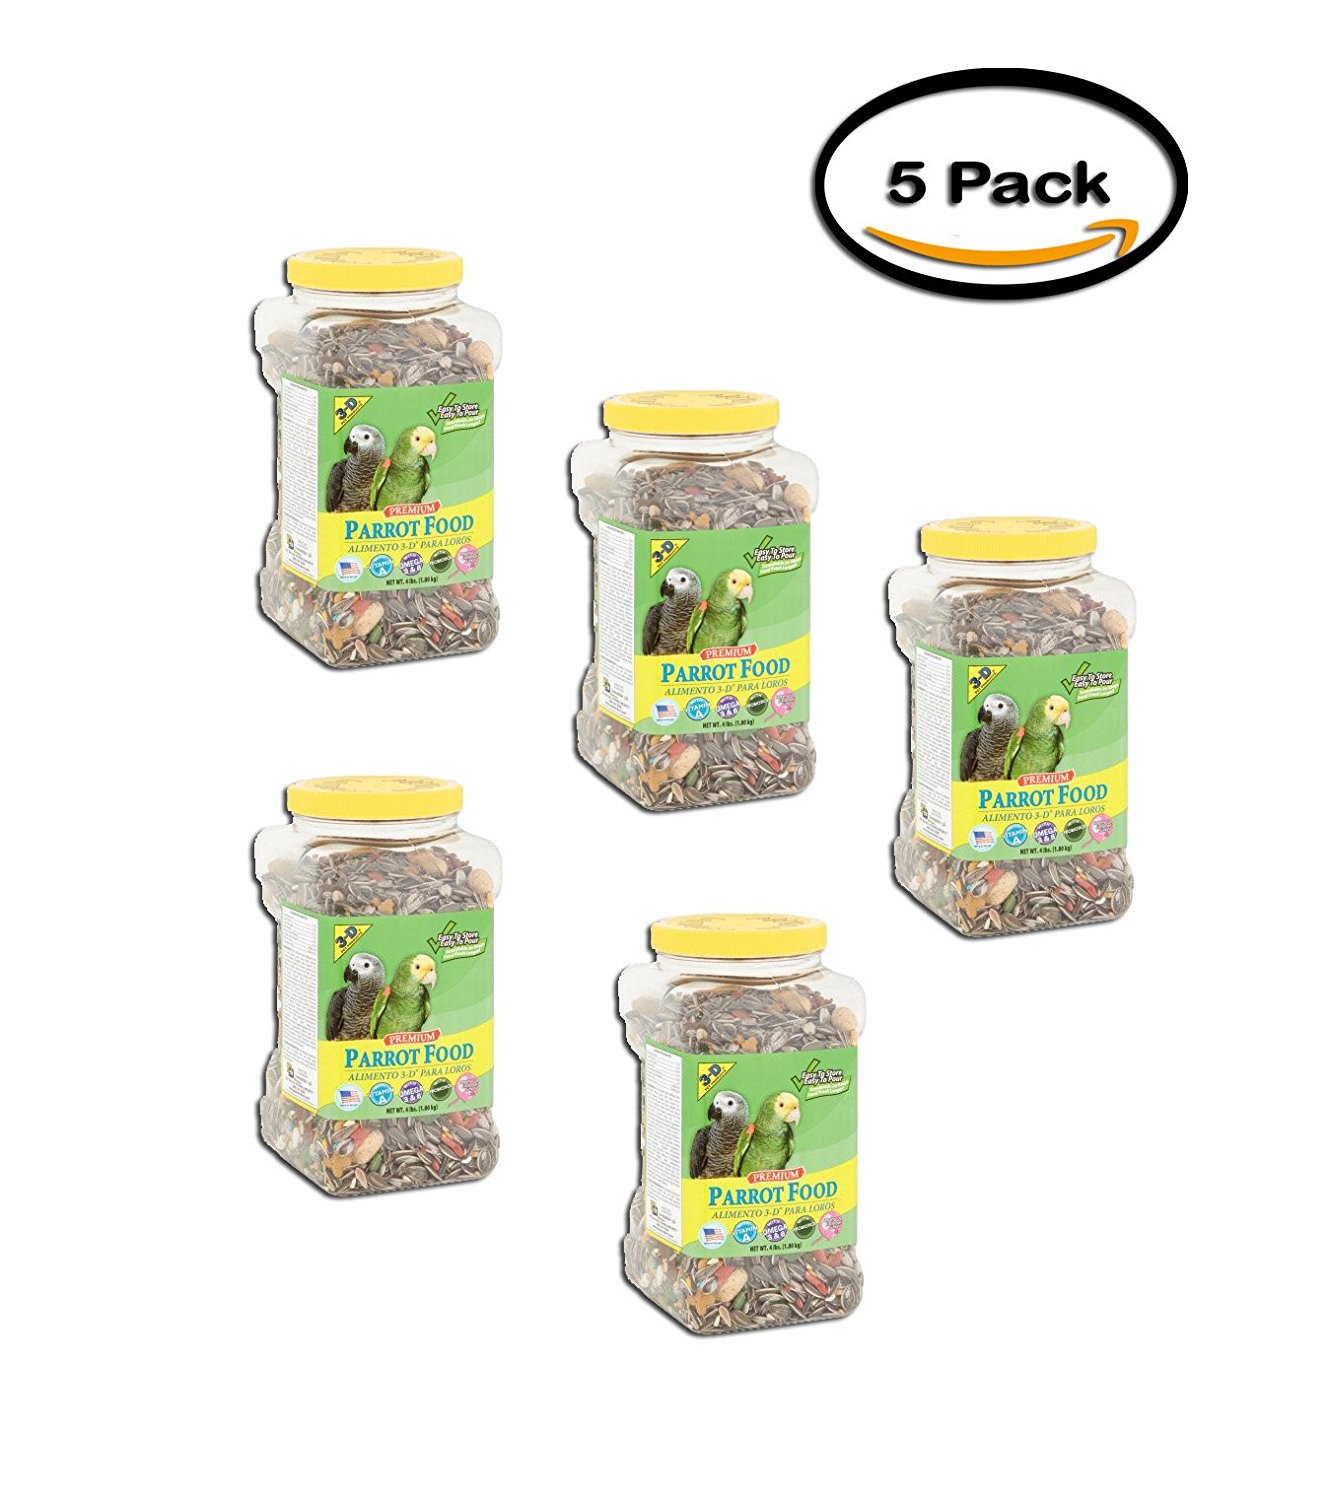 PACK OF 5 - 3-D Pet Products Premium Parrot Food, 4 lbs